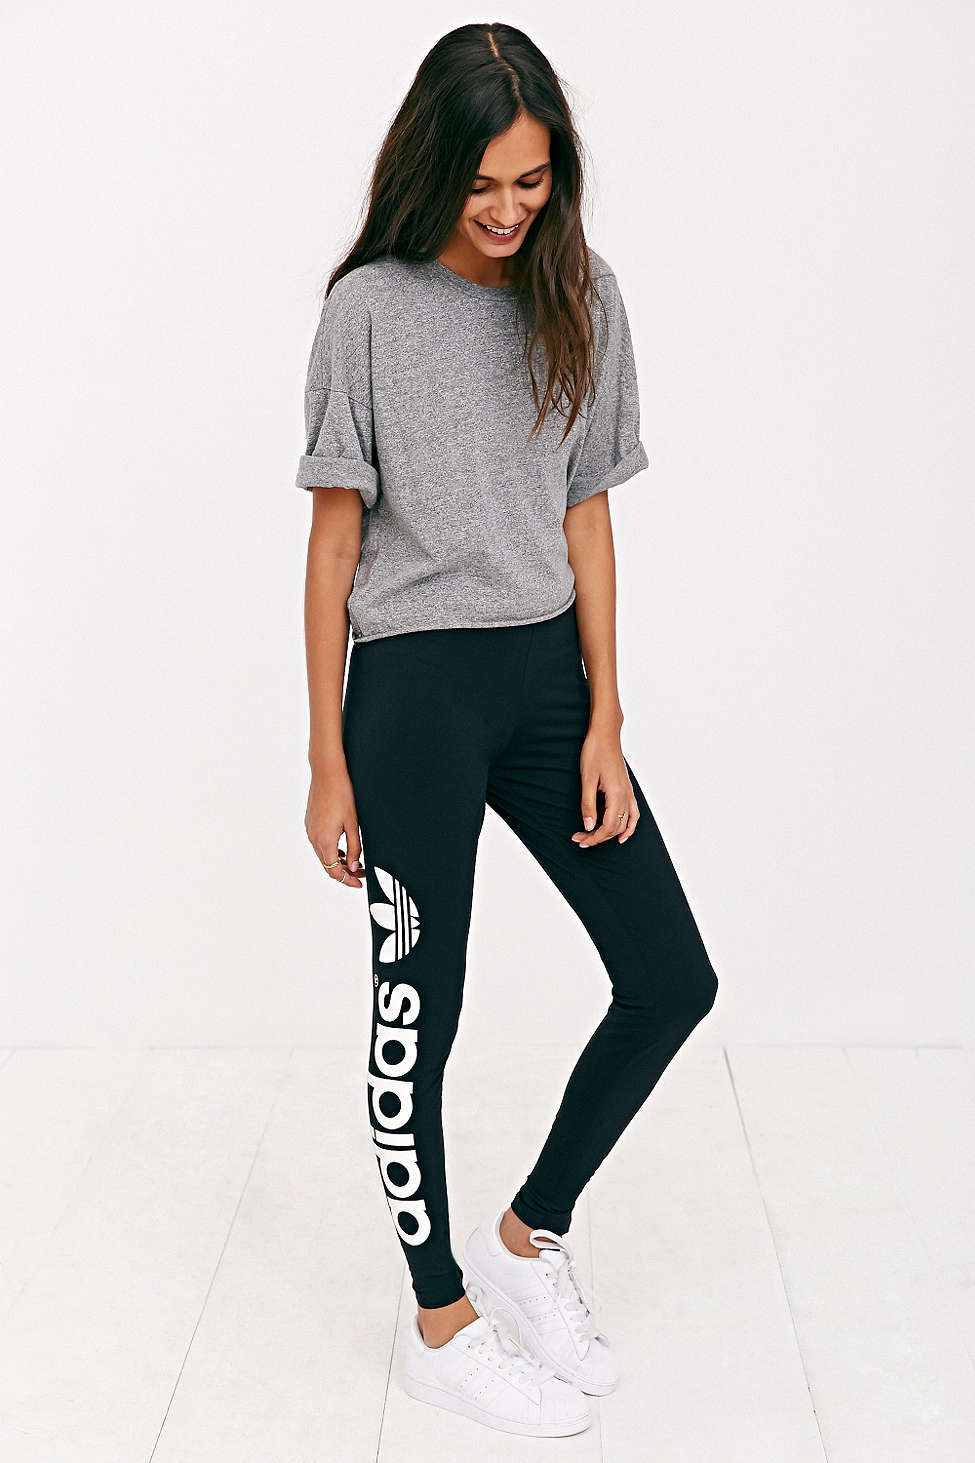 c04c4ed8148c3d Ella Richards on | s t y l e | Fashion, Athletic outfits, Outfits